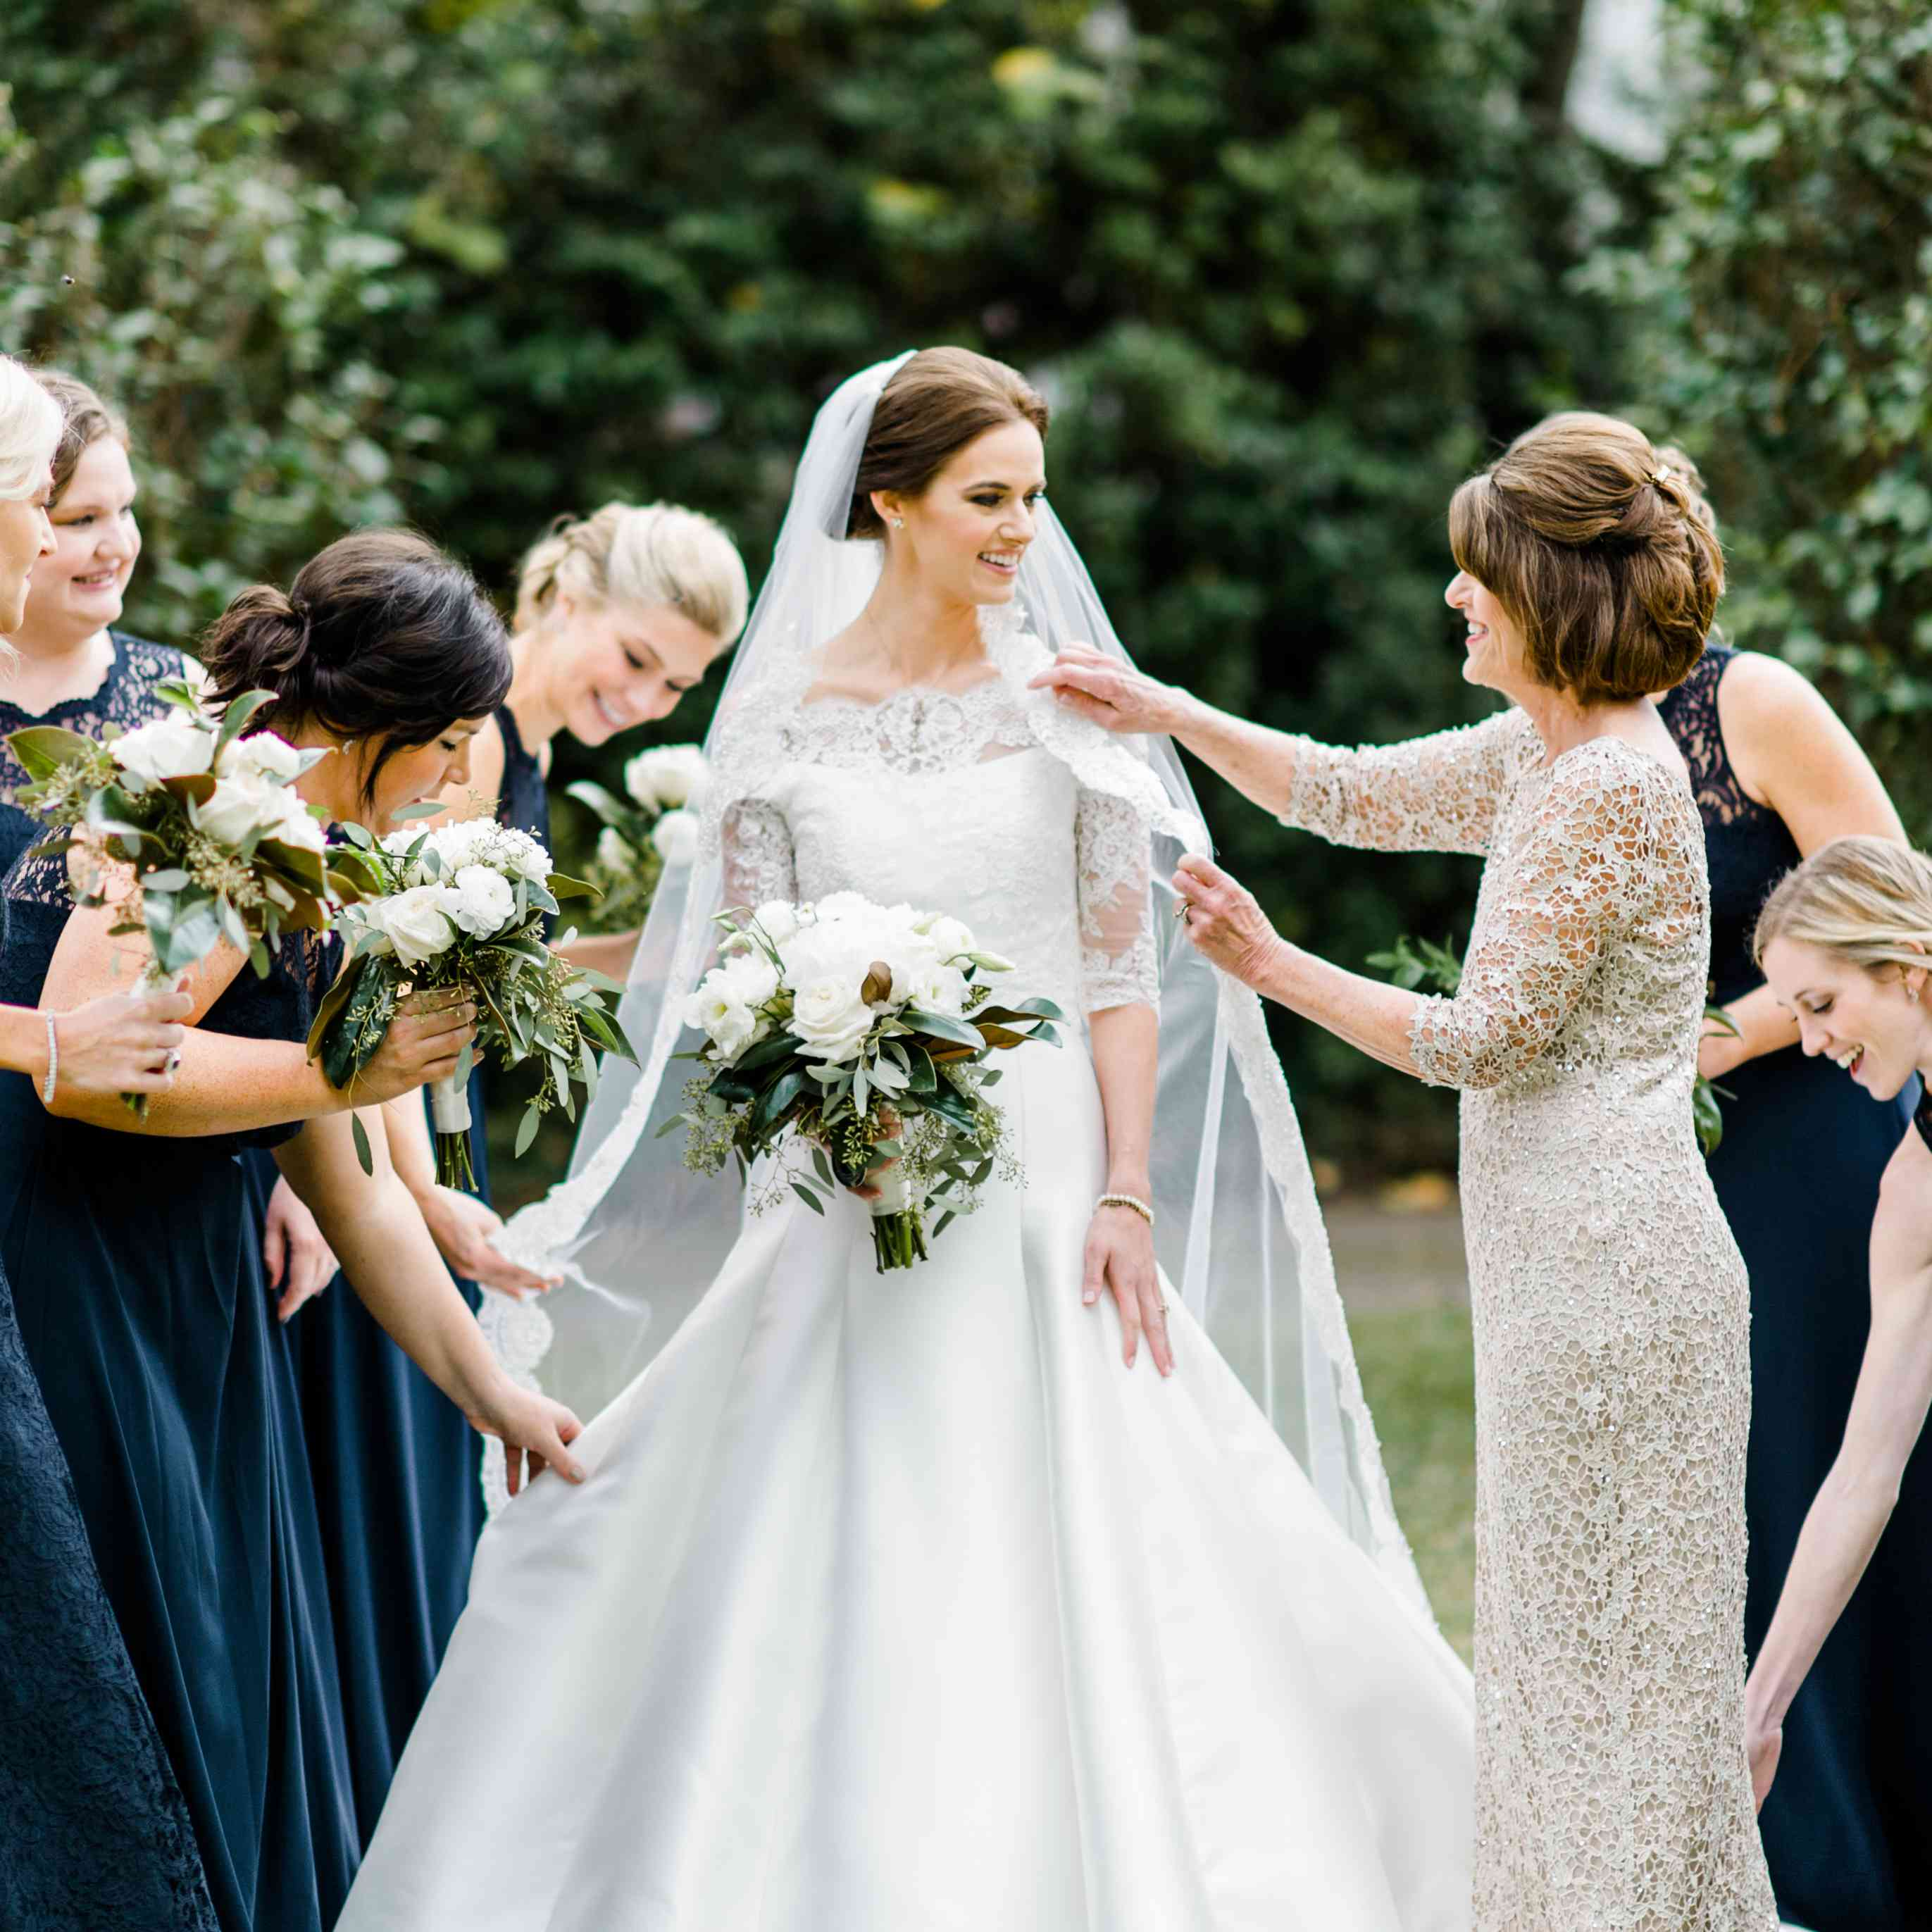 Bride in Wedding Dress with Quarter-Length Lace Sleeves